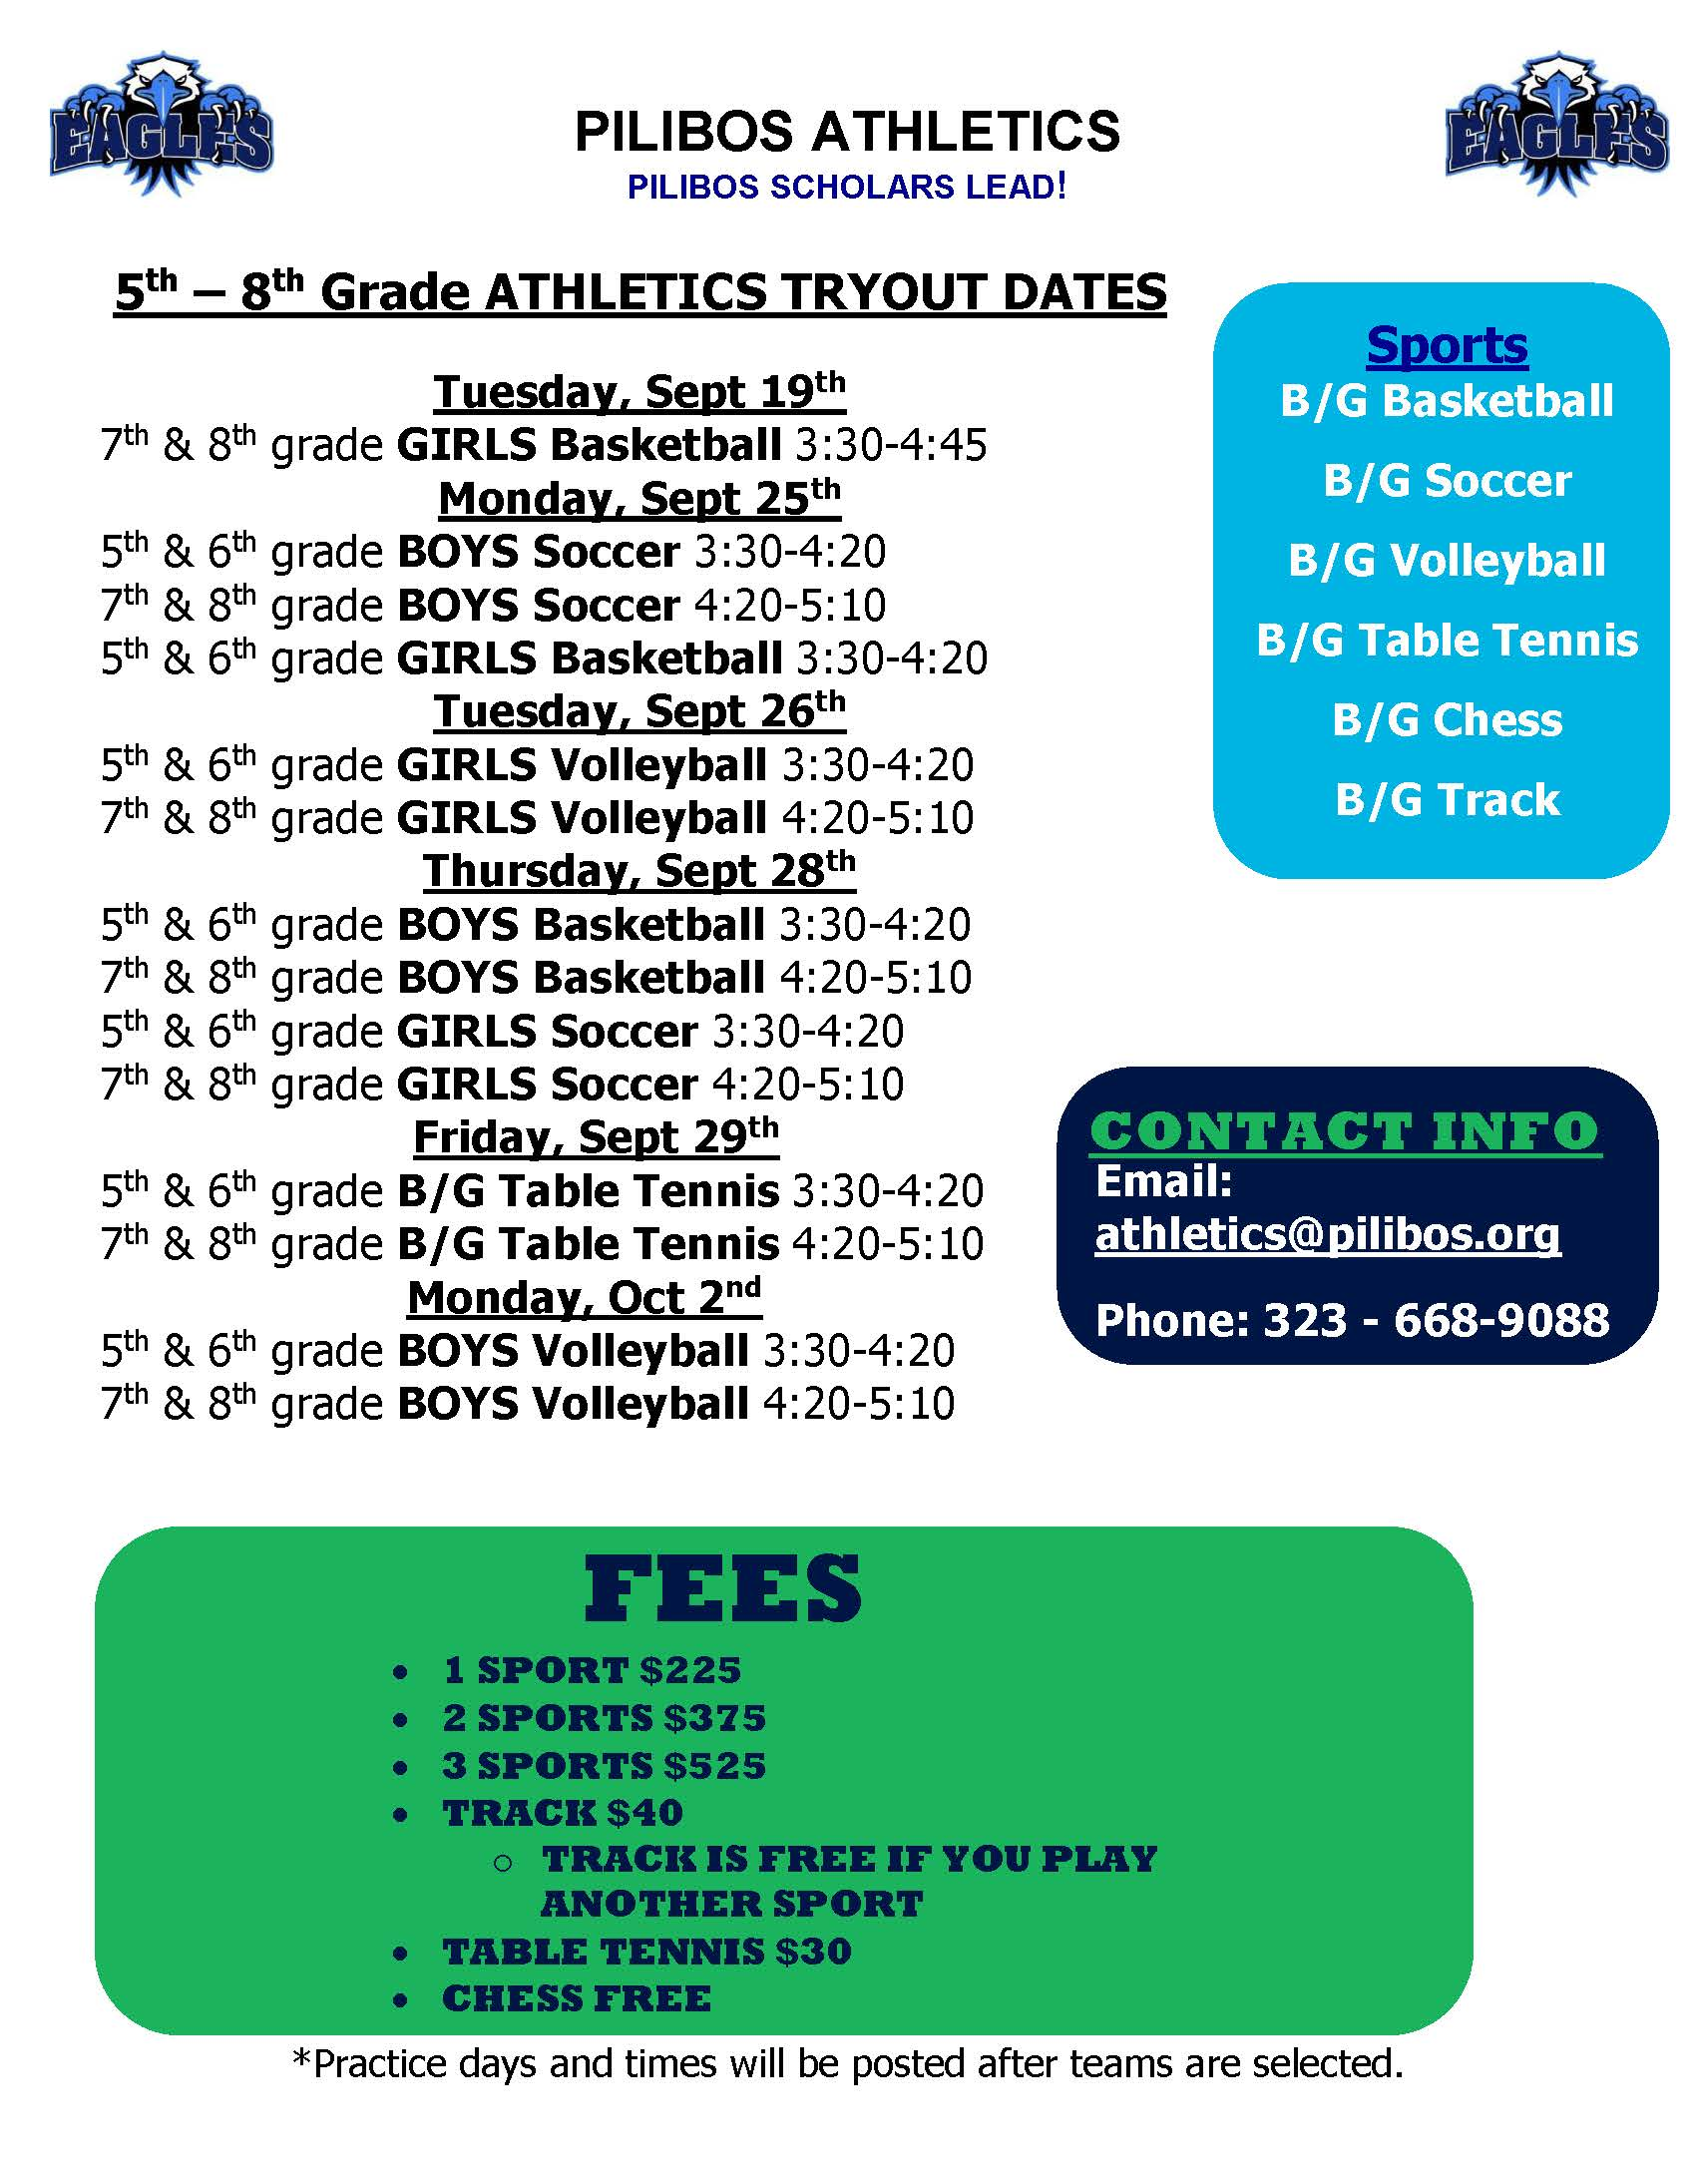 MIDDLE_SCHOOL_TRYOUT_DATES_2017-18.jpg